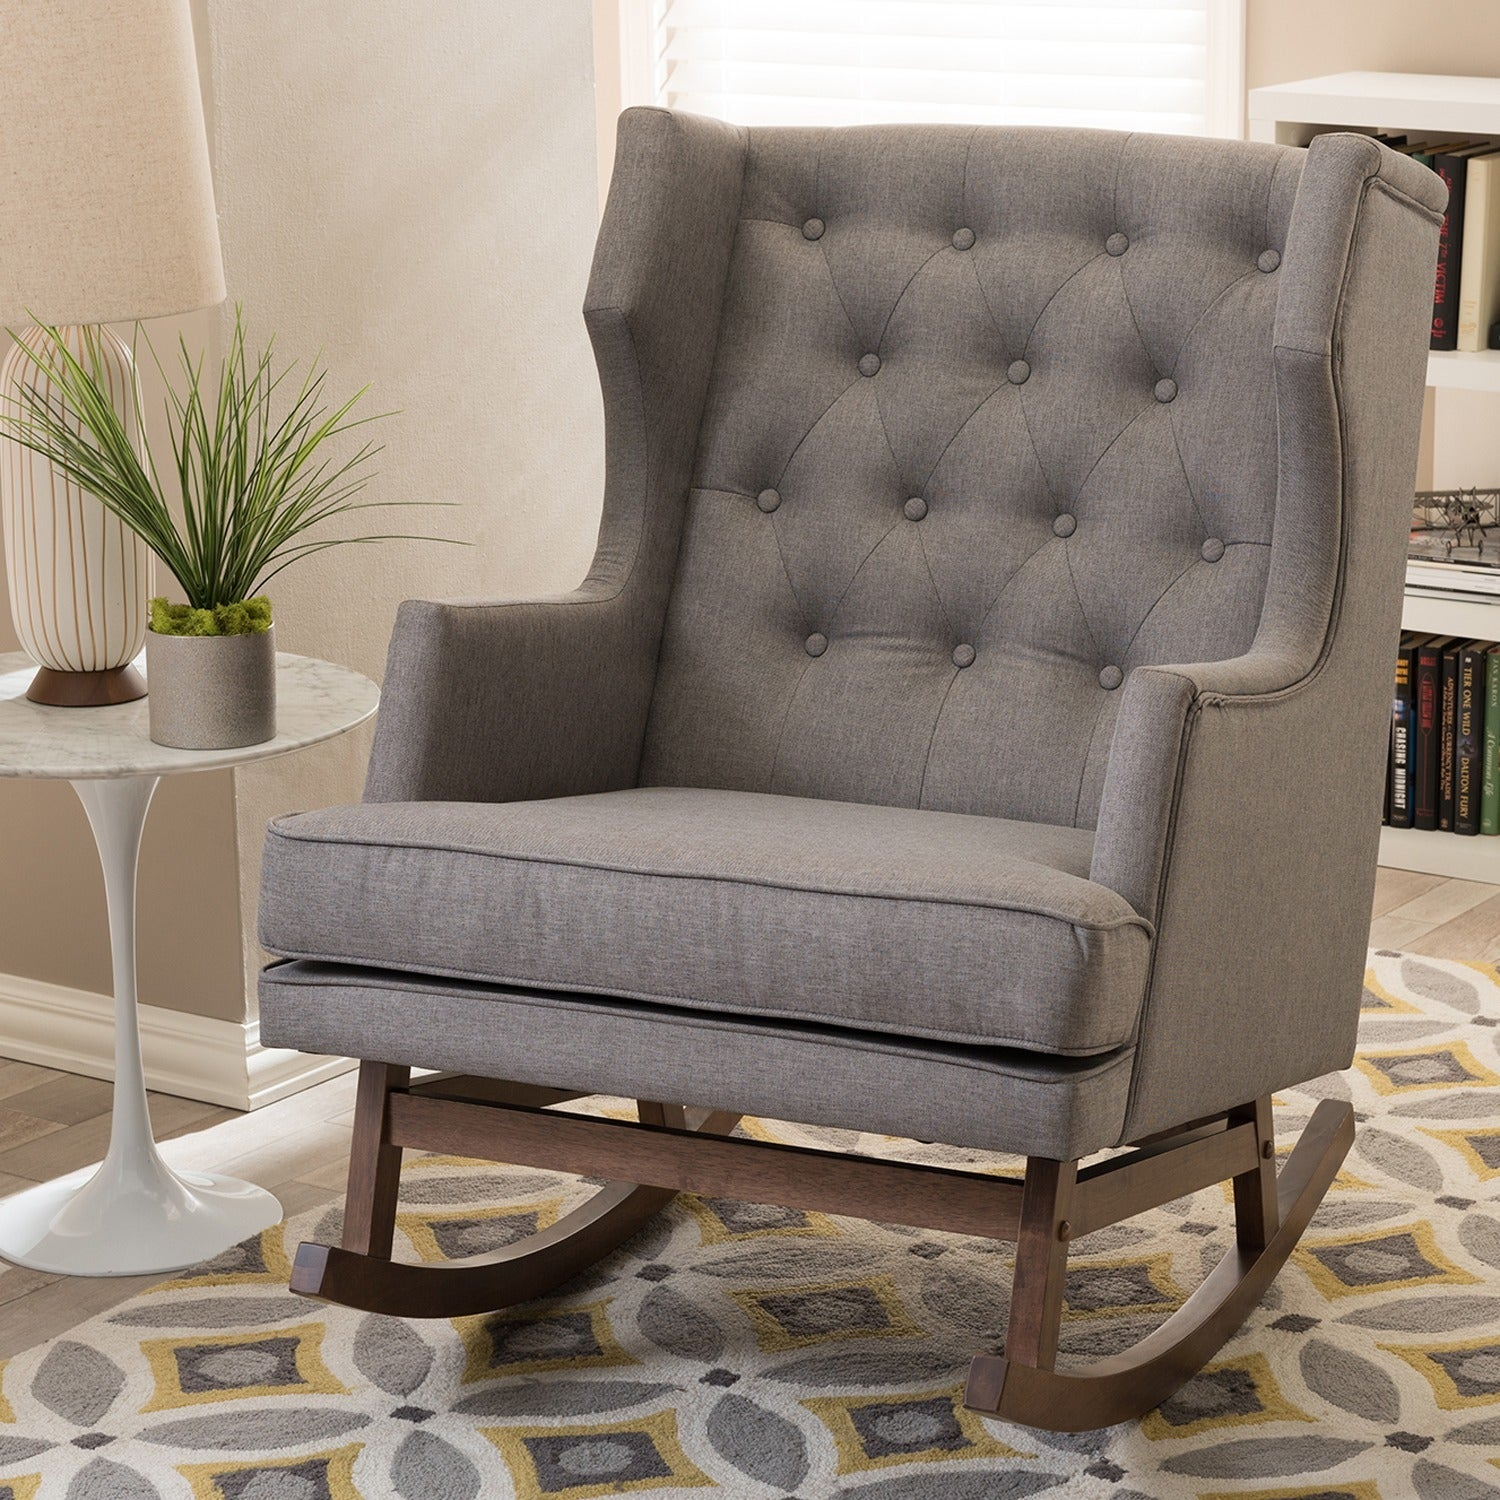 Gracewood Hollow L Engle Contemporary Grey Fabric Rocking Chair Free Shipping Today 20543641